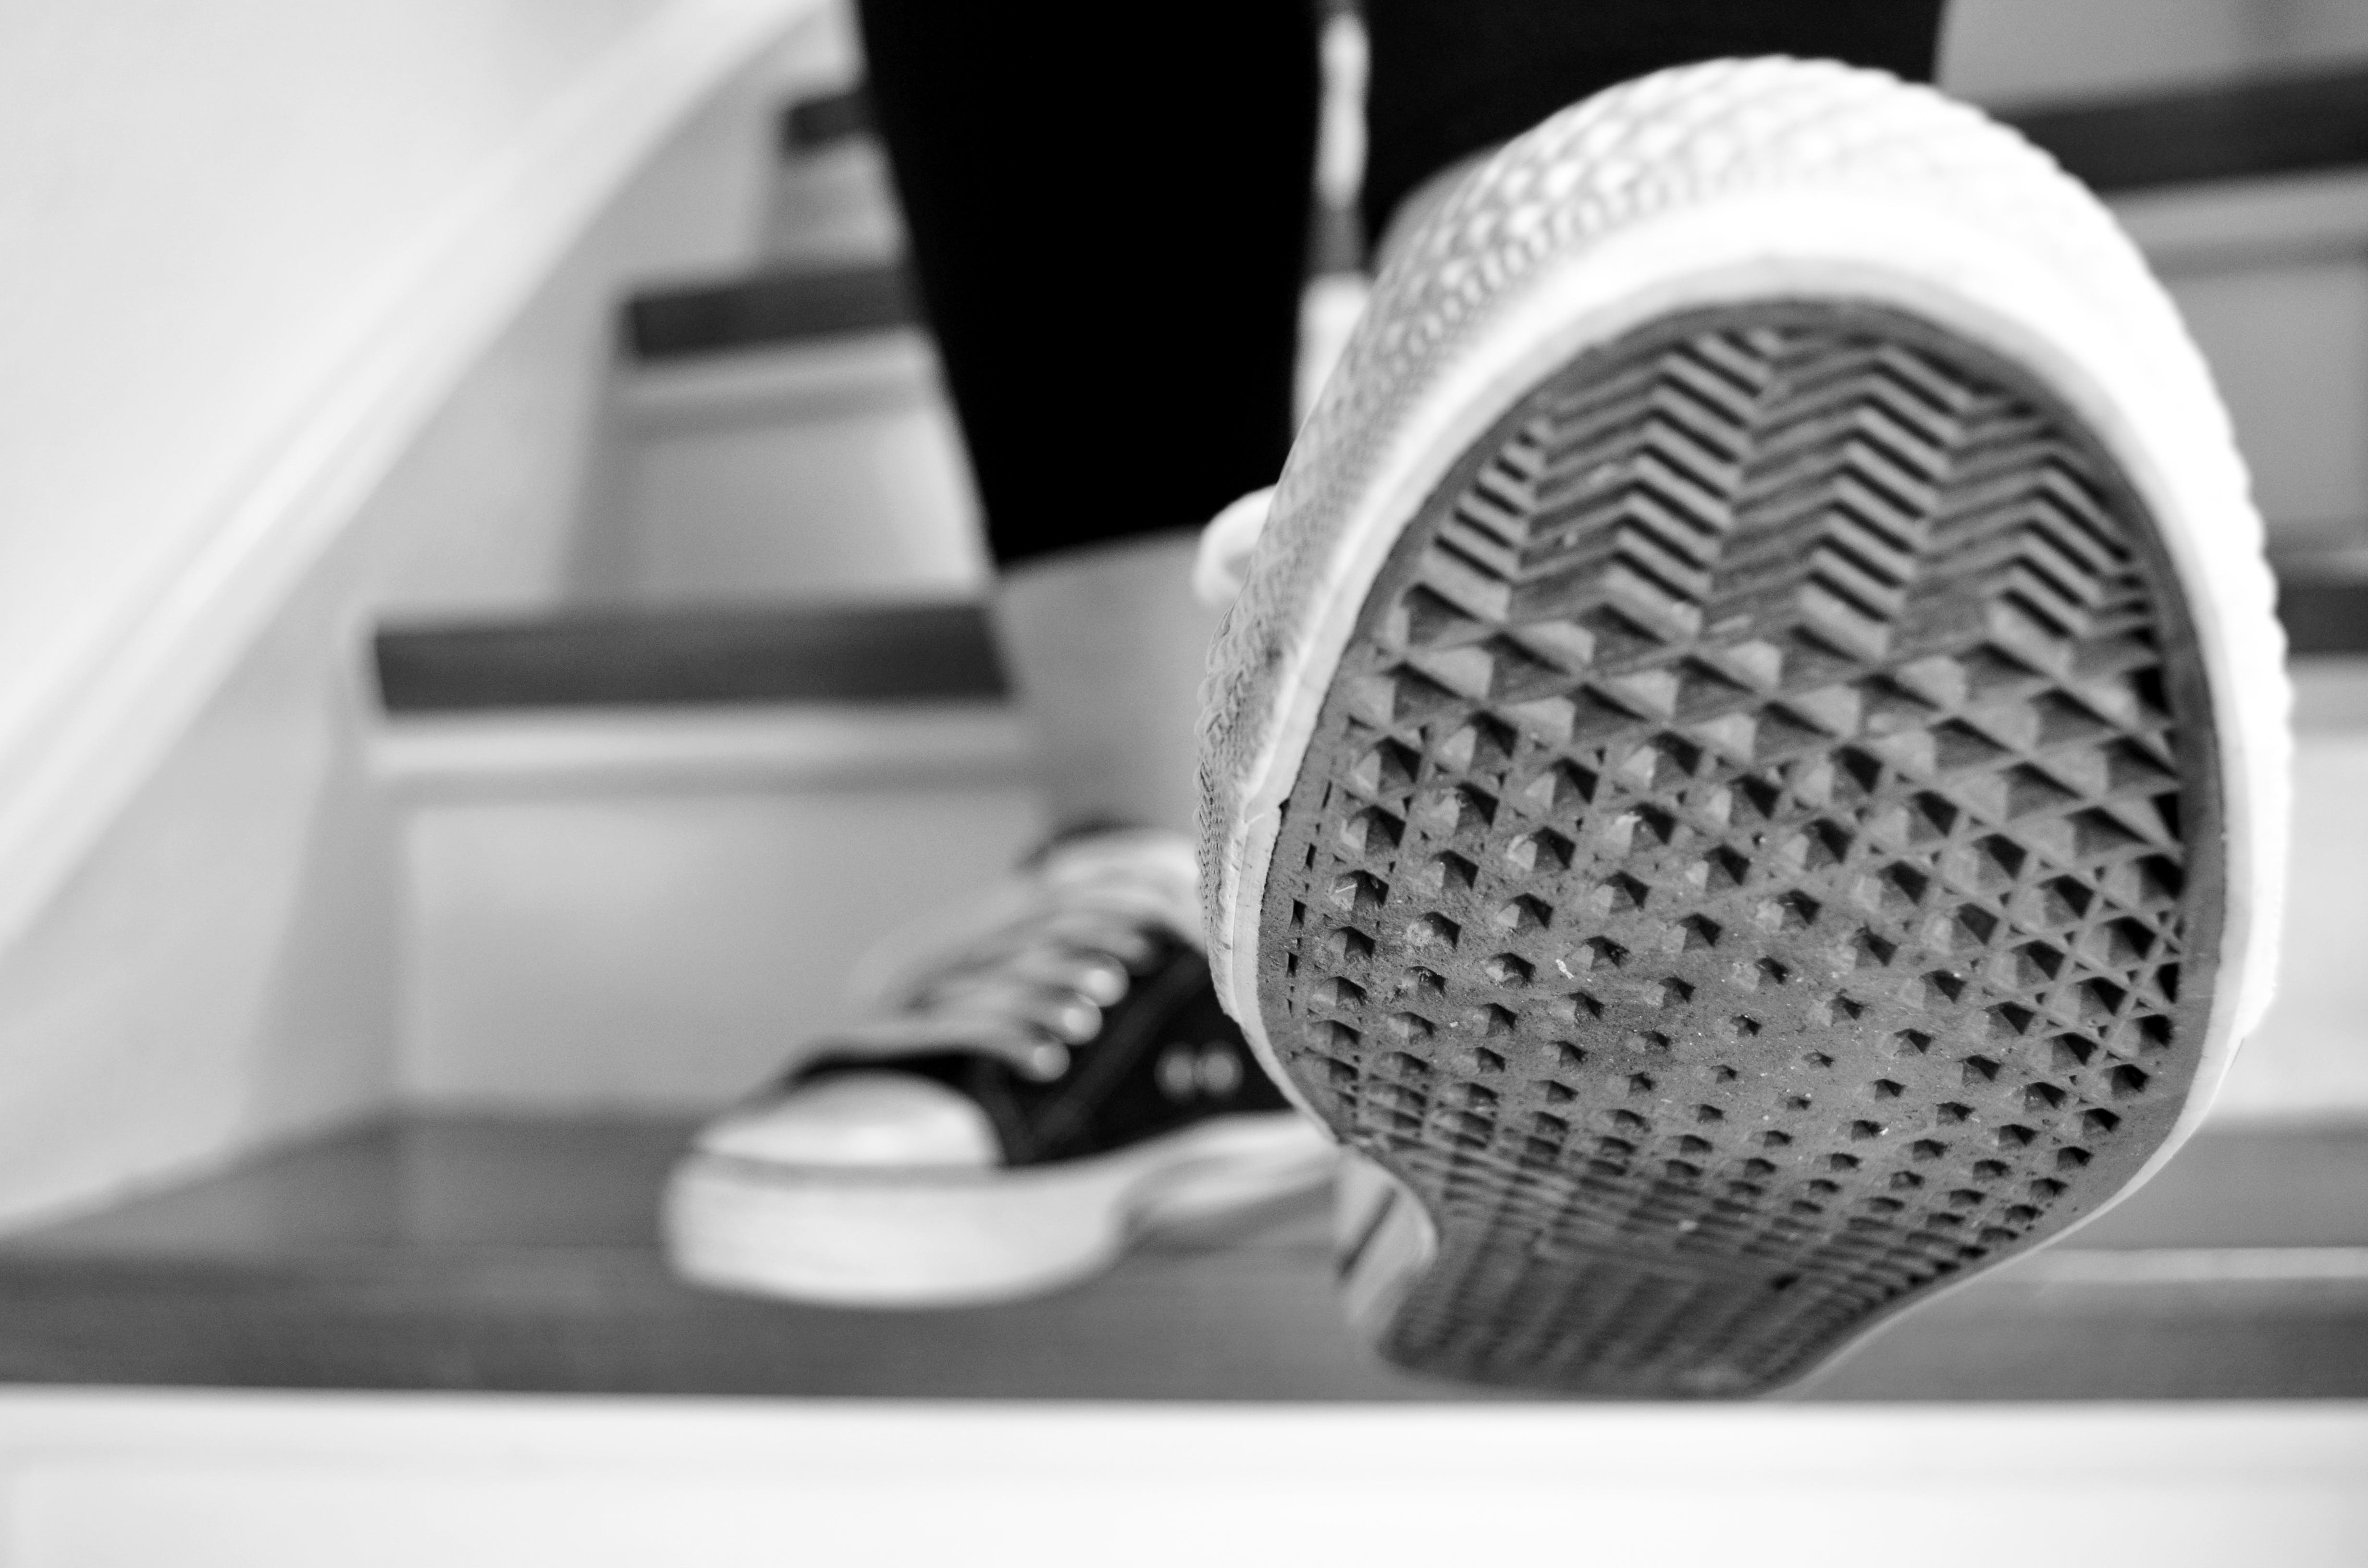 Grayscale Photo of Shoe Sole